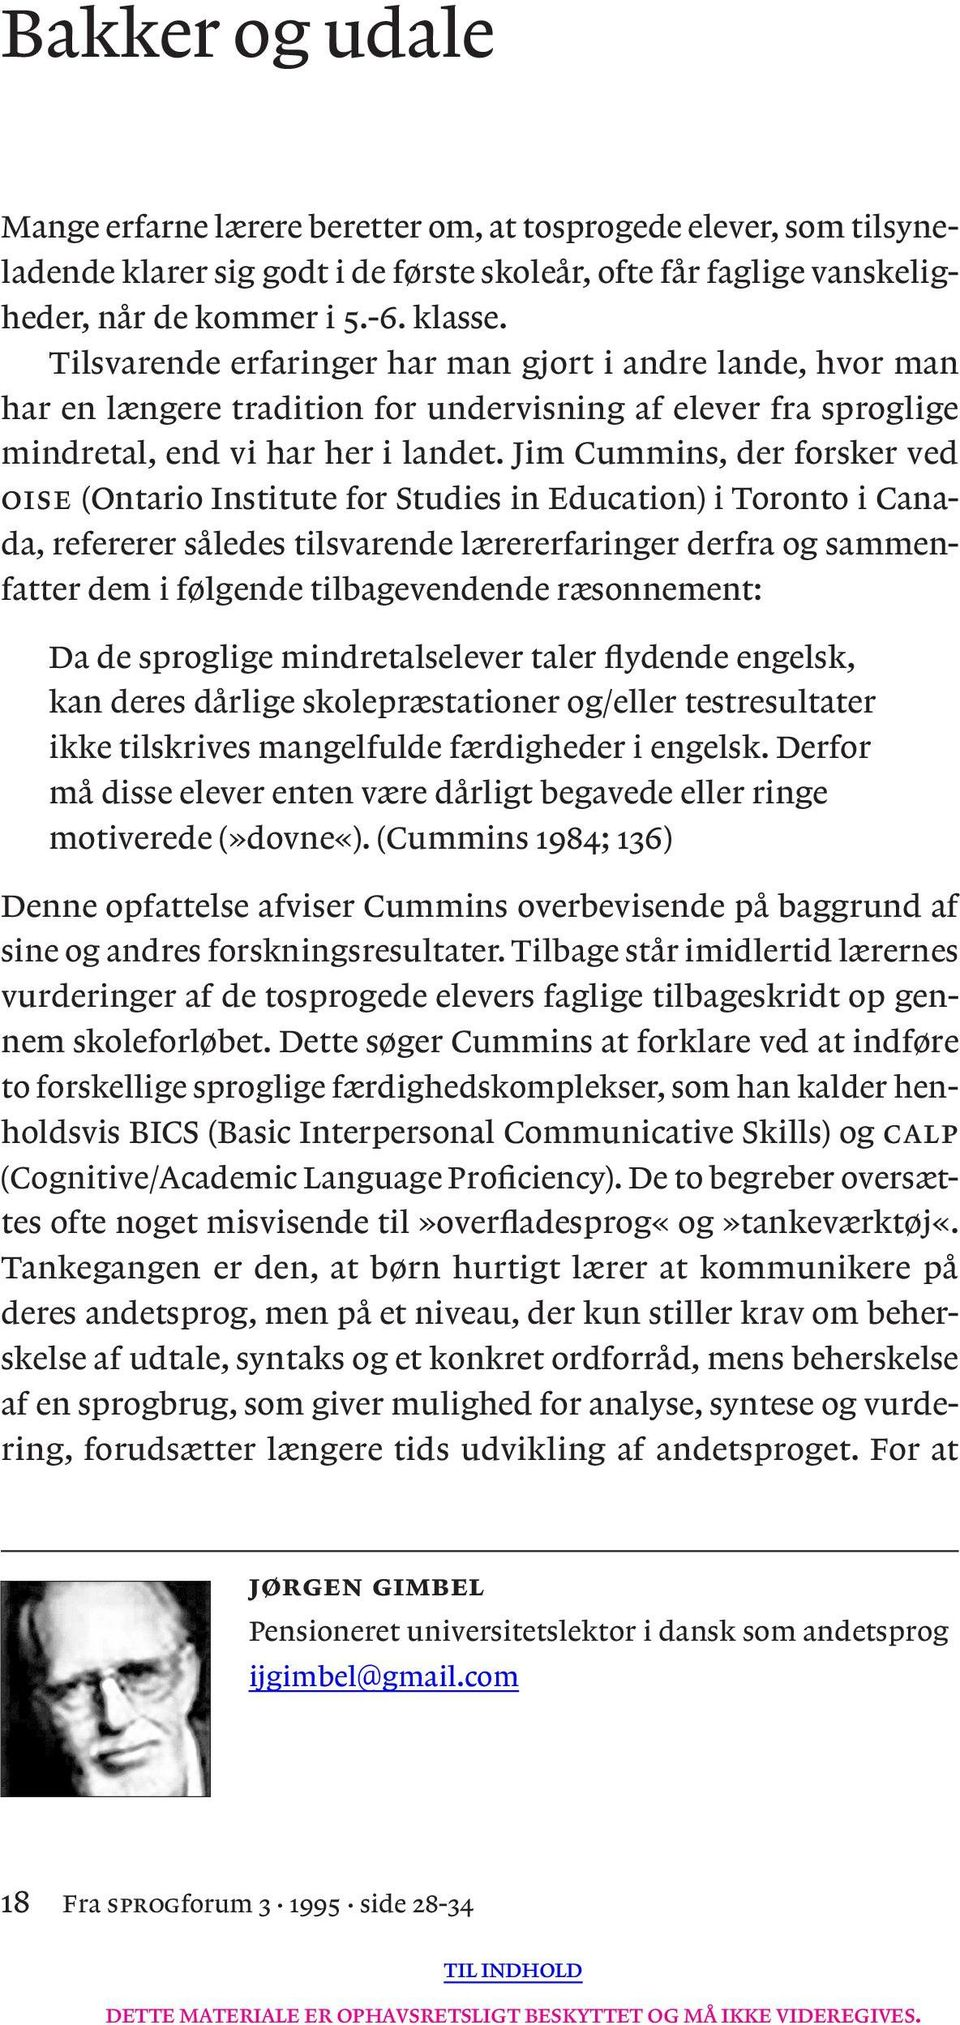 Jim Cummins, der forsker ved oise (Ontario Institute for Studies in Education) i Toronto i Canada, refererer således tilsvarende lærererfaringer derfra og sammenfatter dem i følgende tilbagevendende